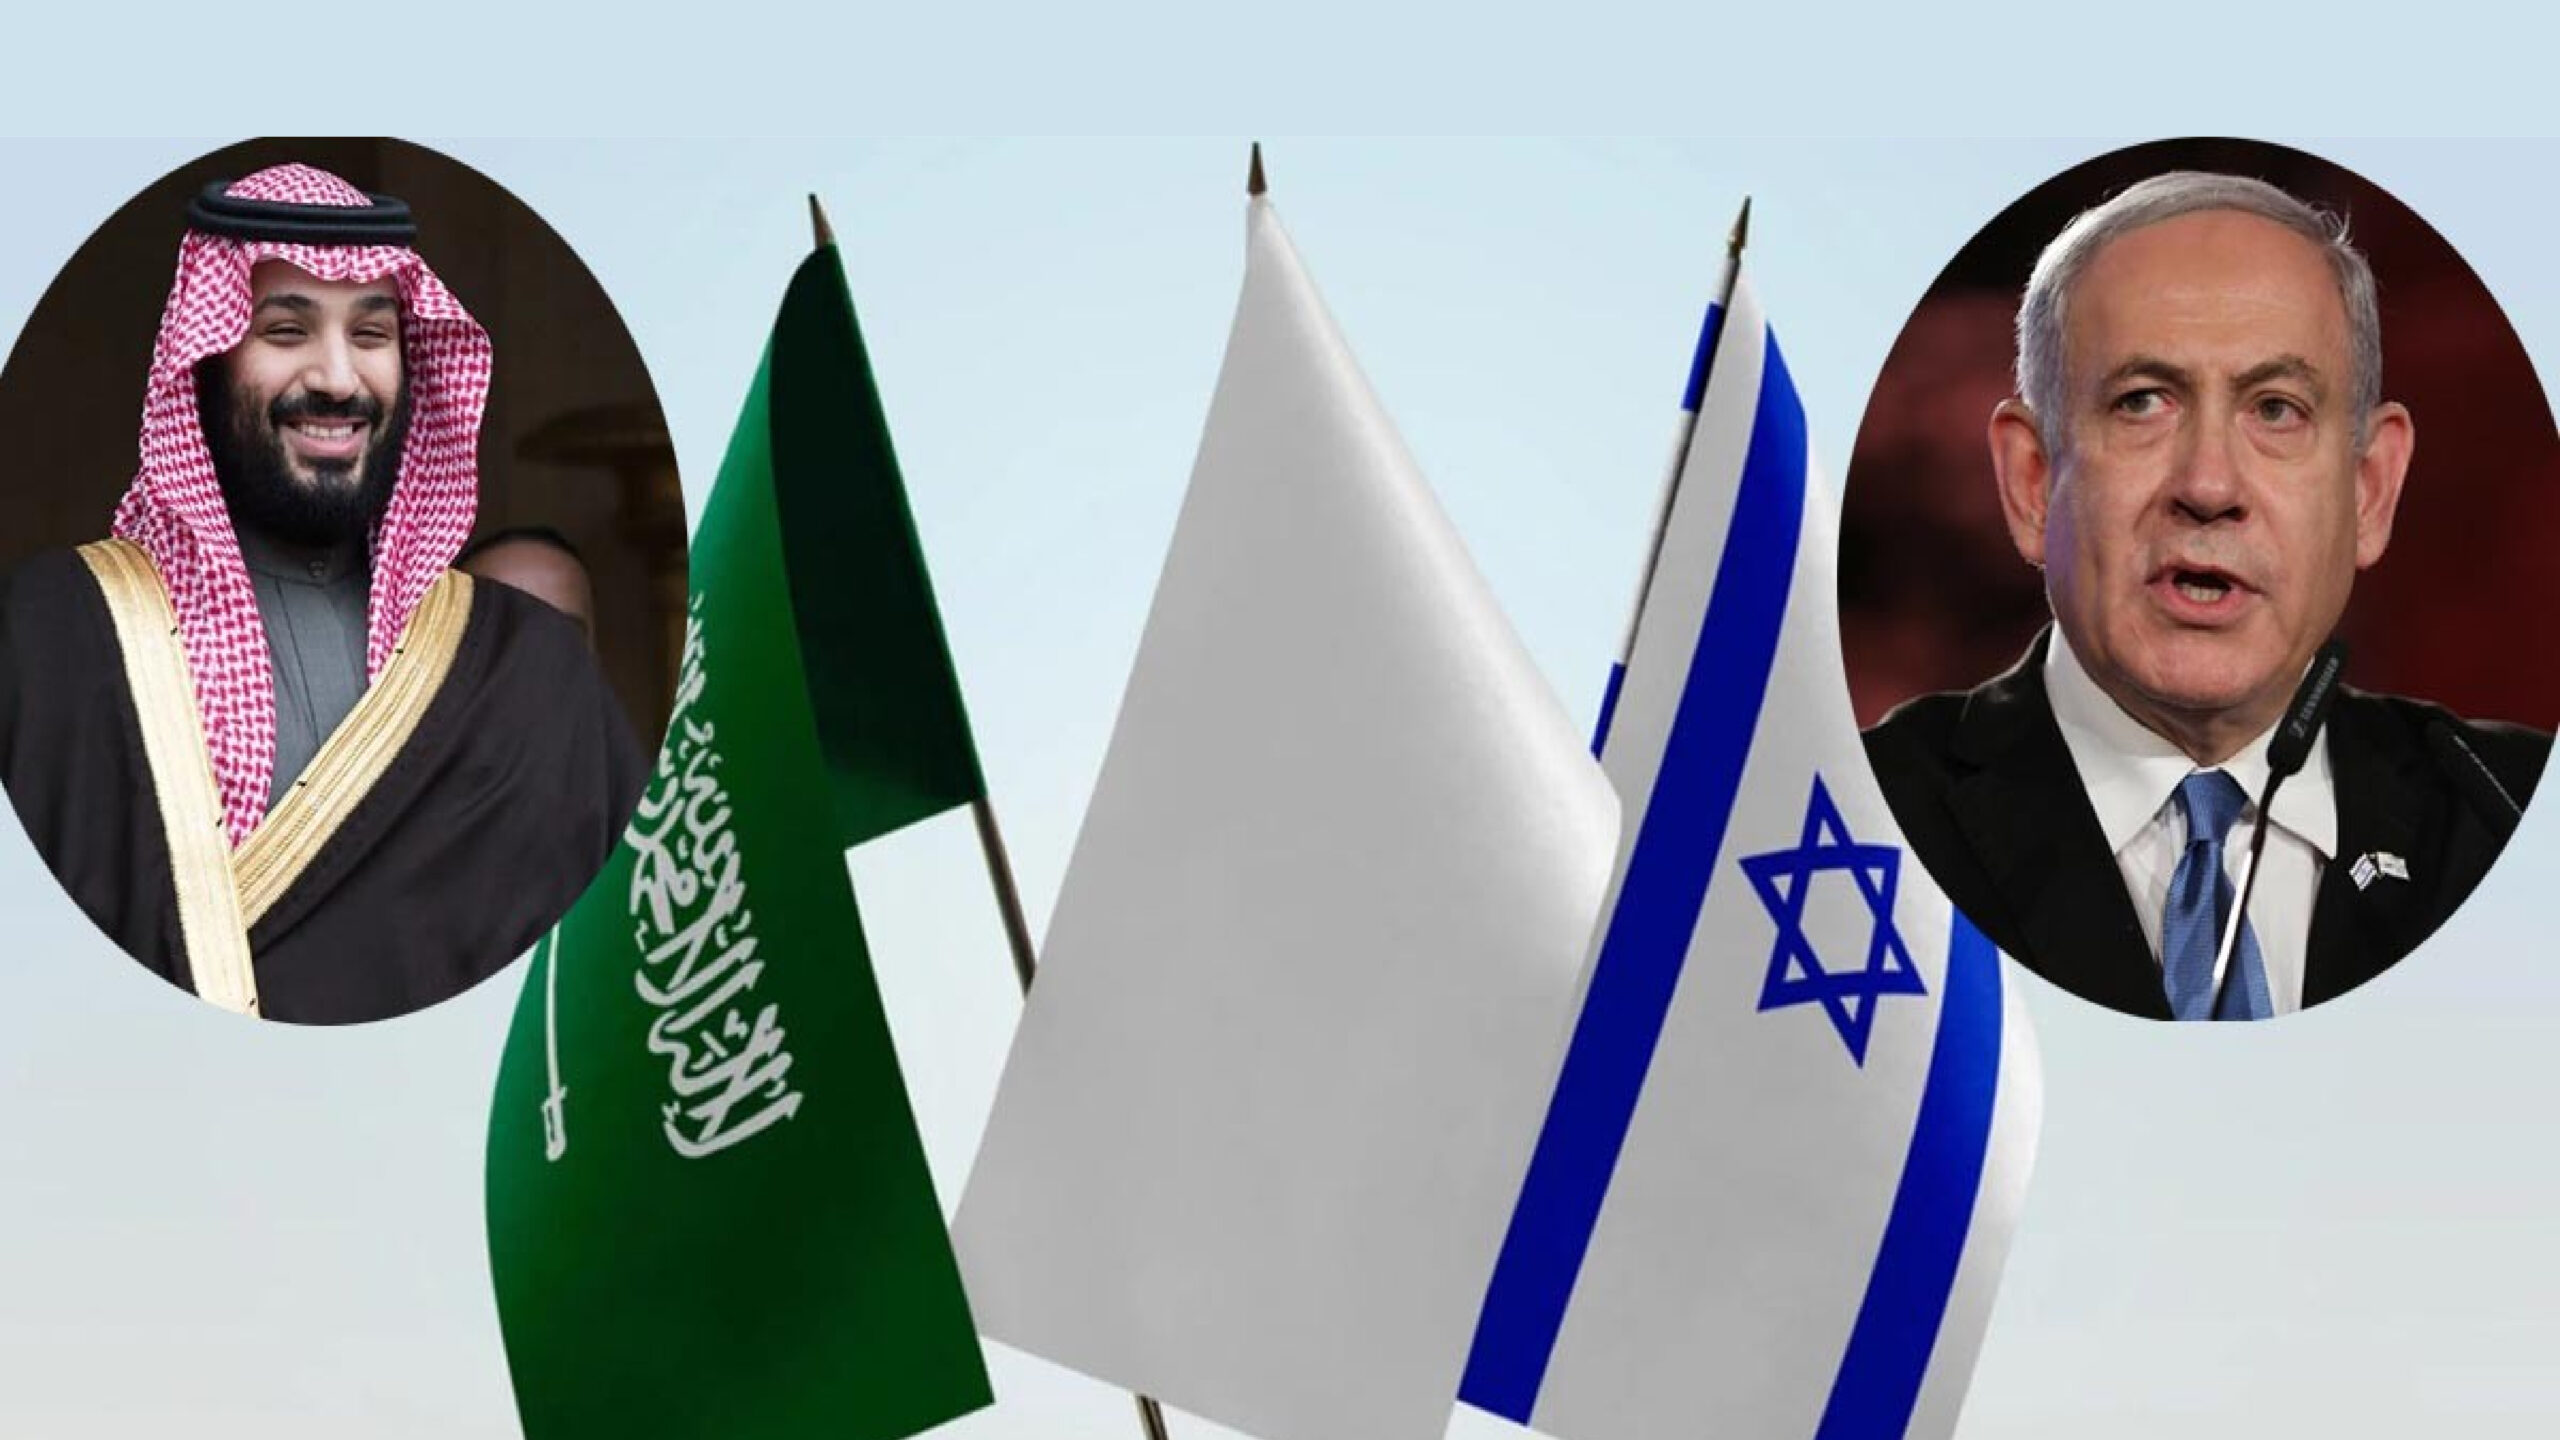 Middle East will benefit tremendously through ties with Israel: Saudi Foreign Minister